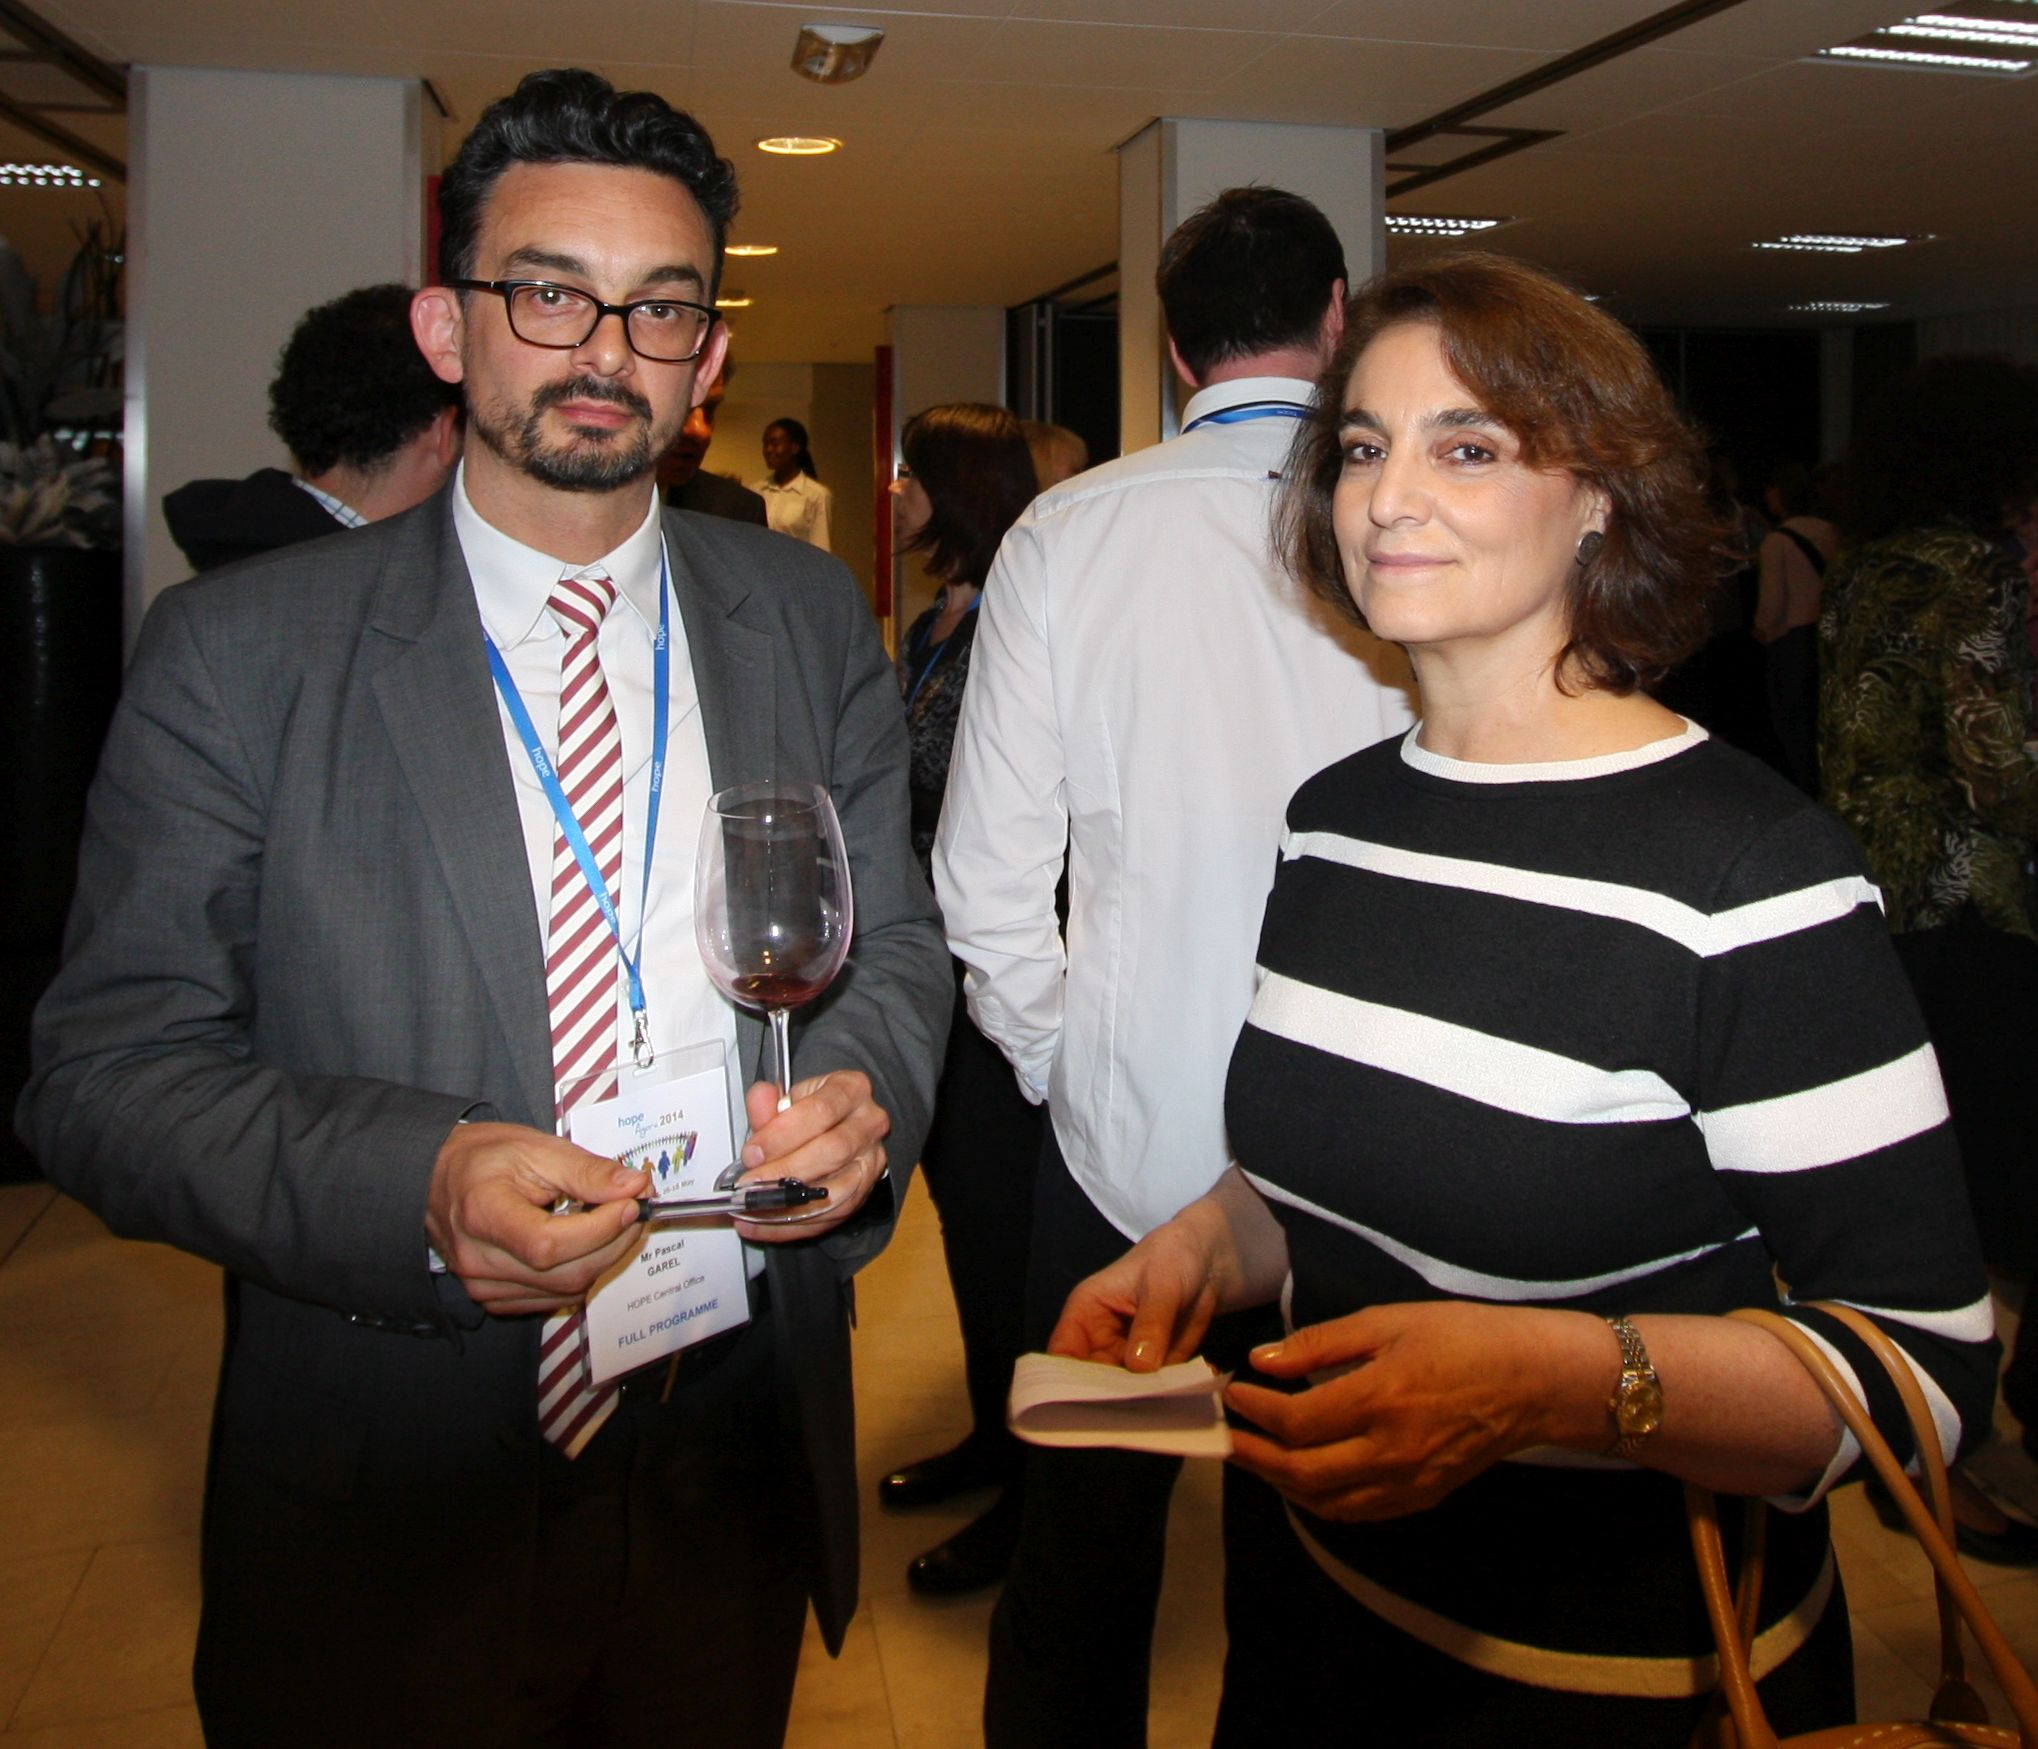 Pascal Garel (CEO) and Sara Pupato (President)